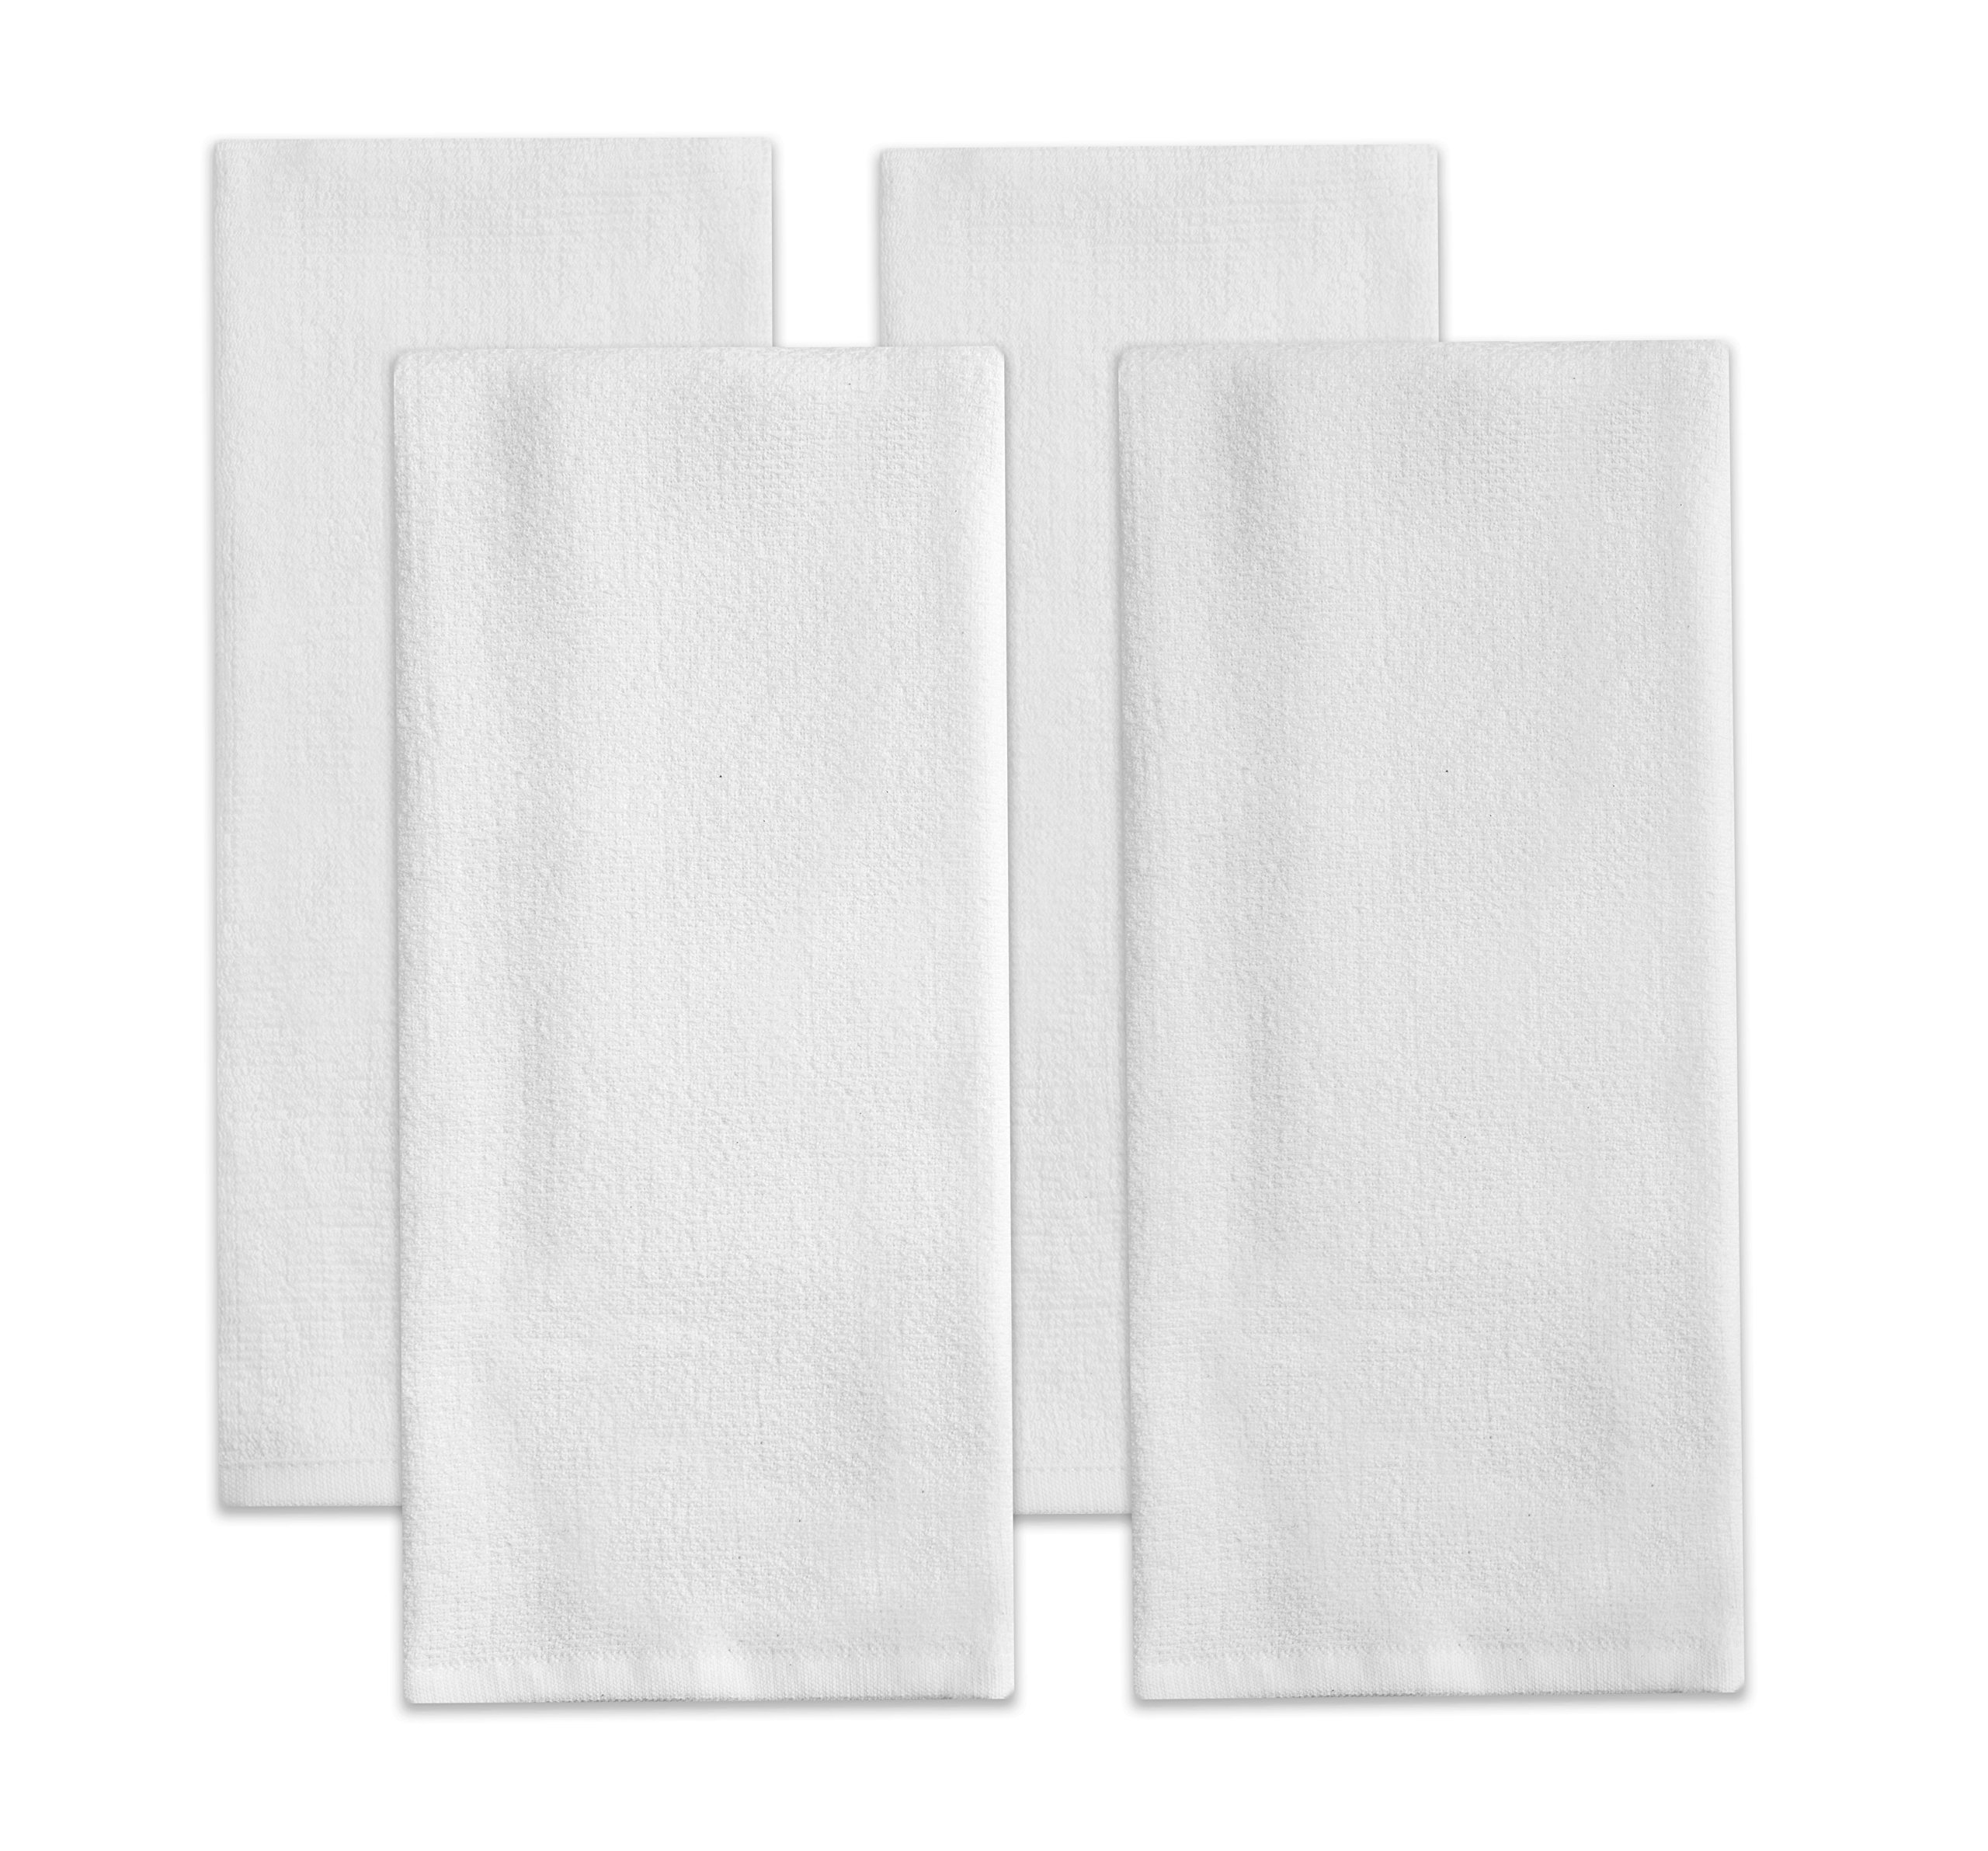 Sticky Toffee Cotton Terry Kitchen Dish Towel, 4 Pack, White, 28 in x 14 in